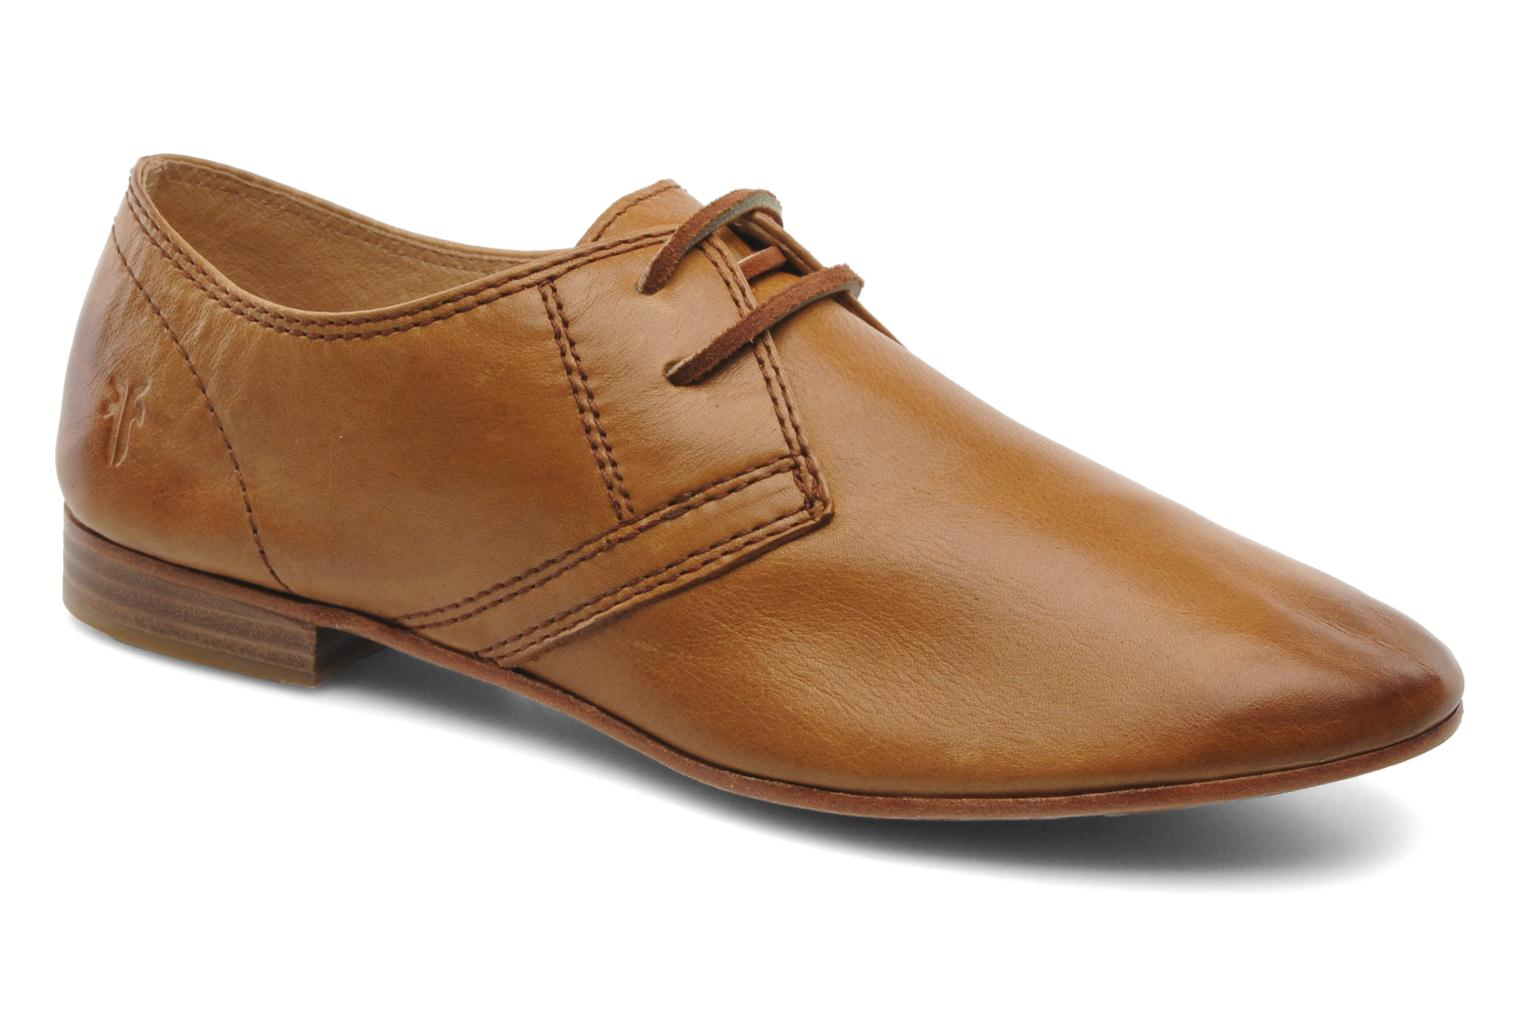 CHAUSSURES - Chaussures à lacetsFrye D1NMAt36p